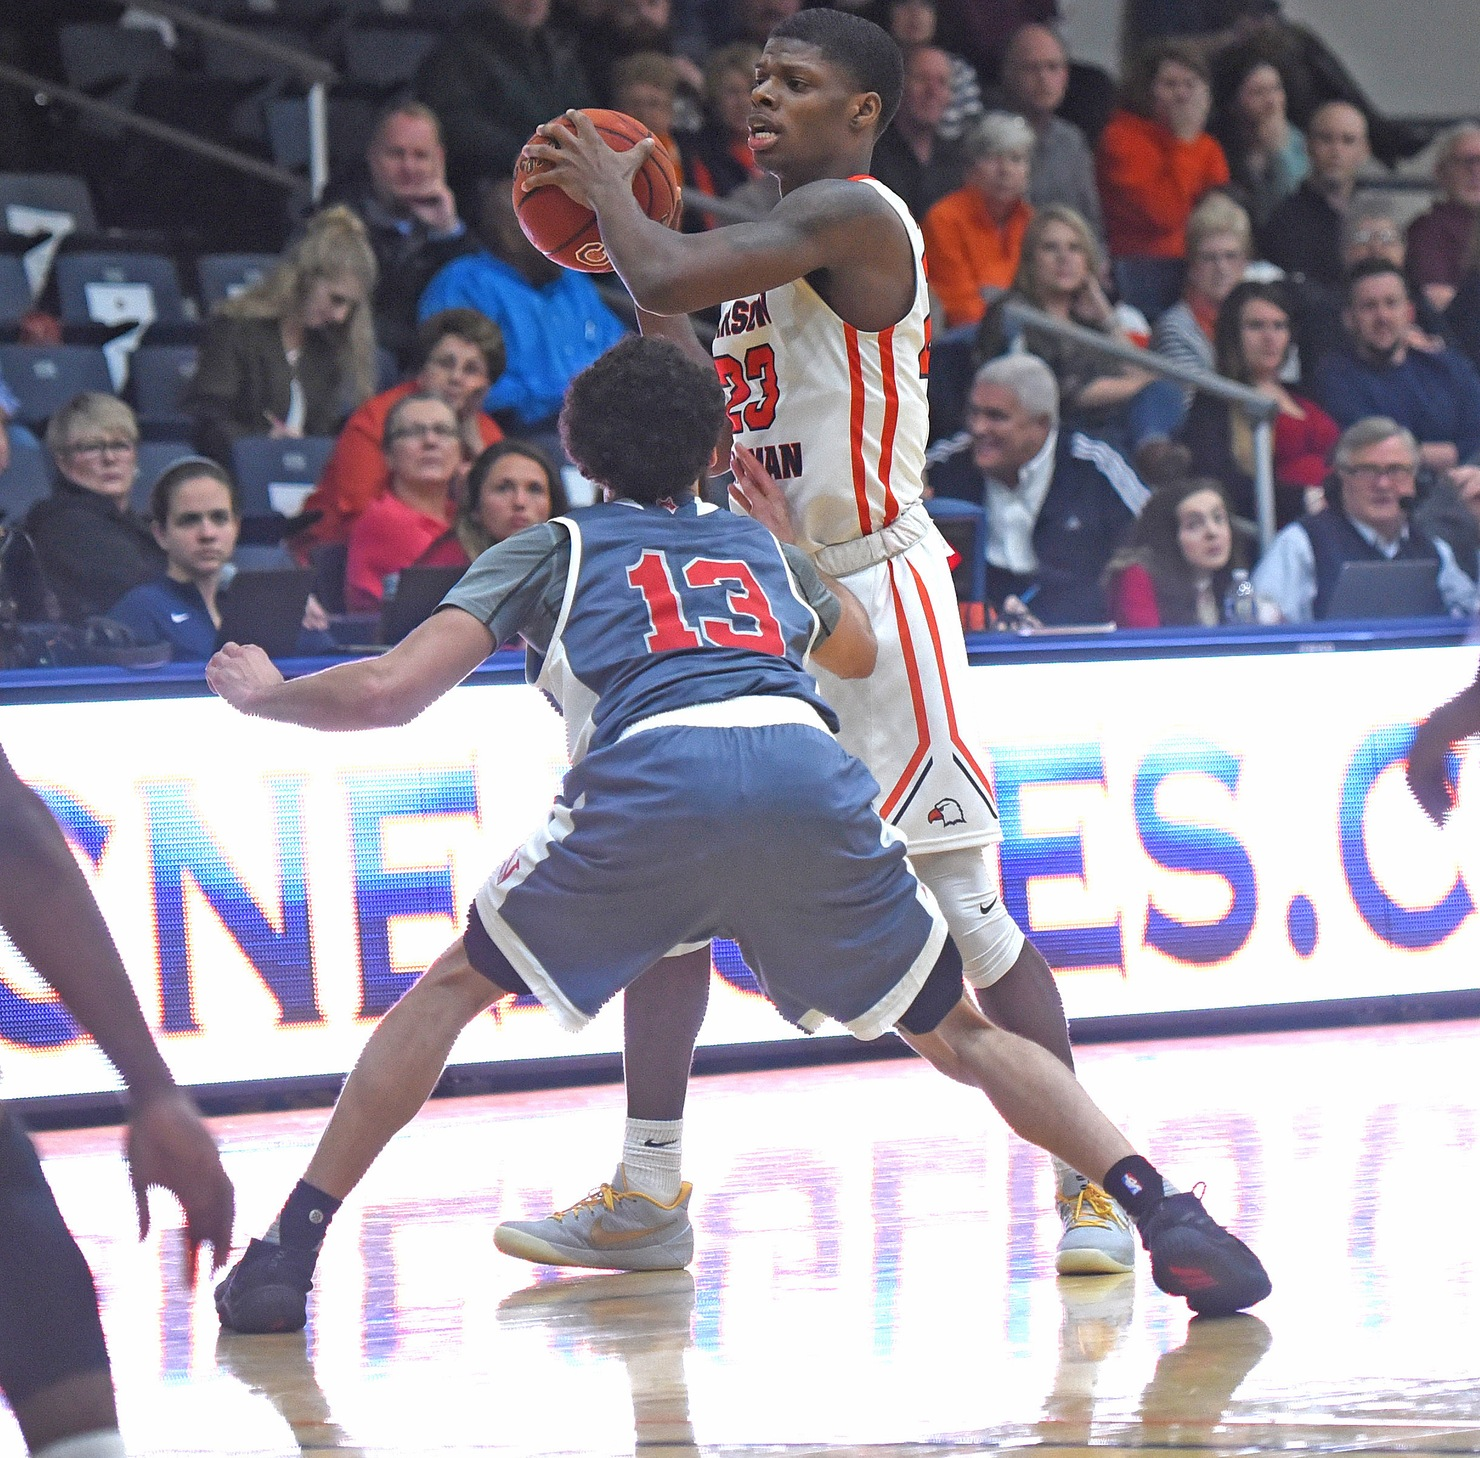 Carson-Newman tries to right ship against up-tempo Wolves